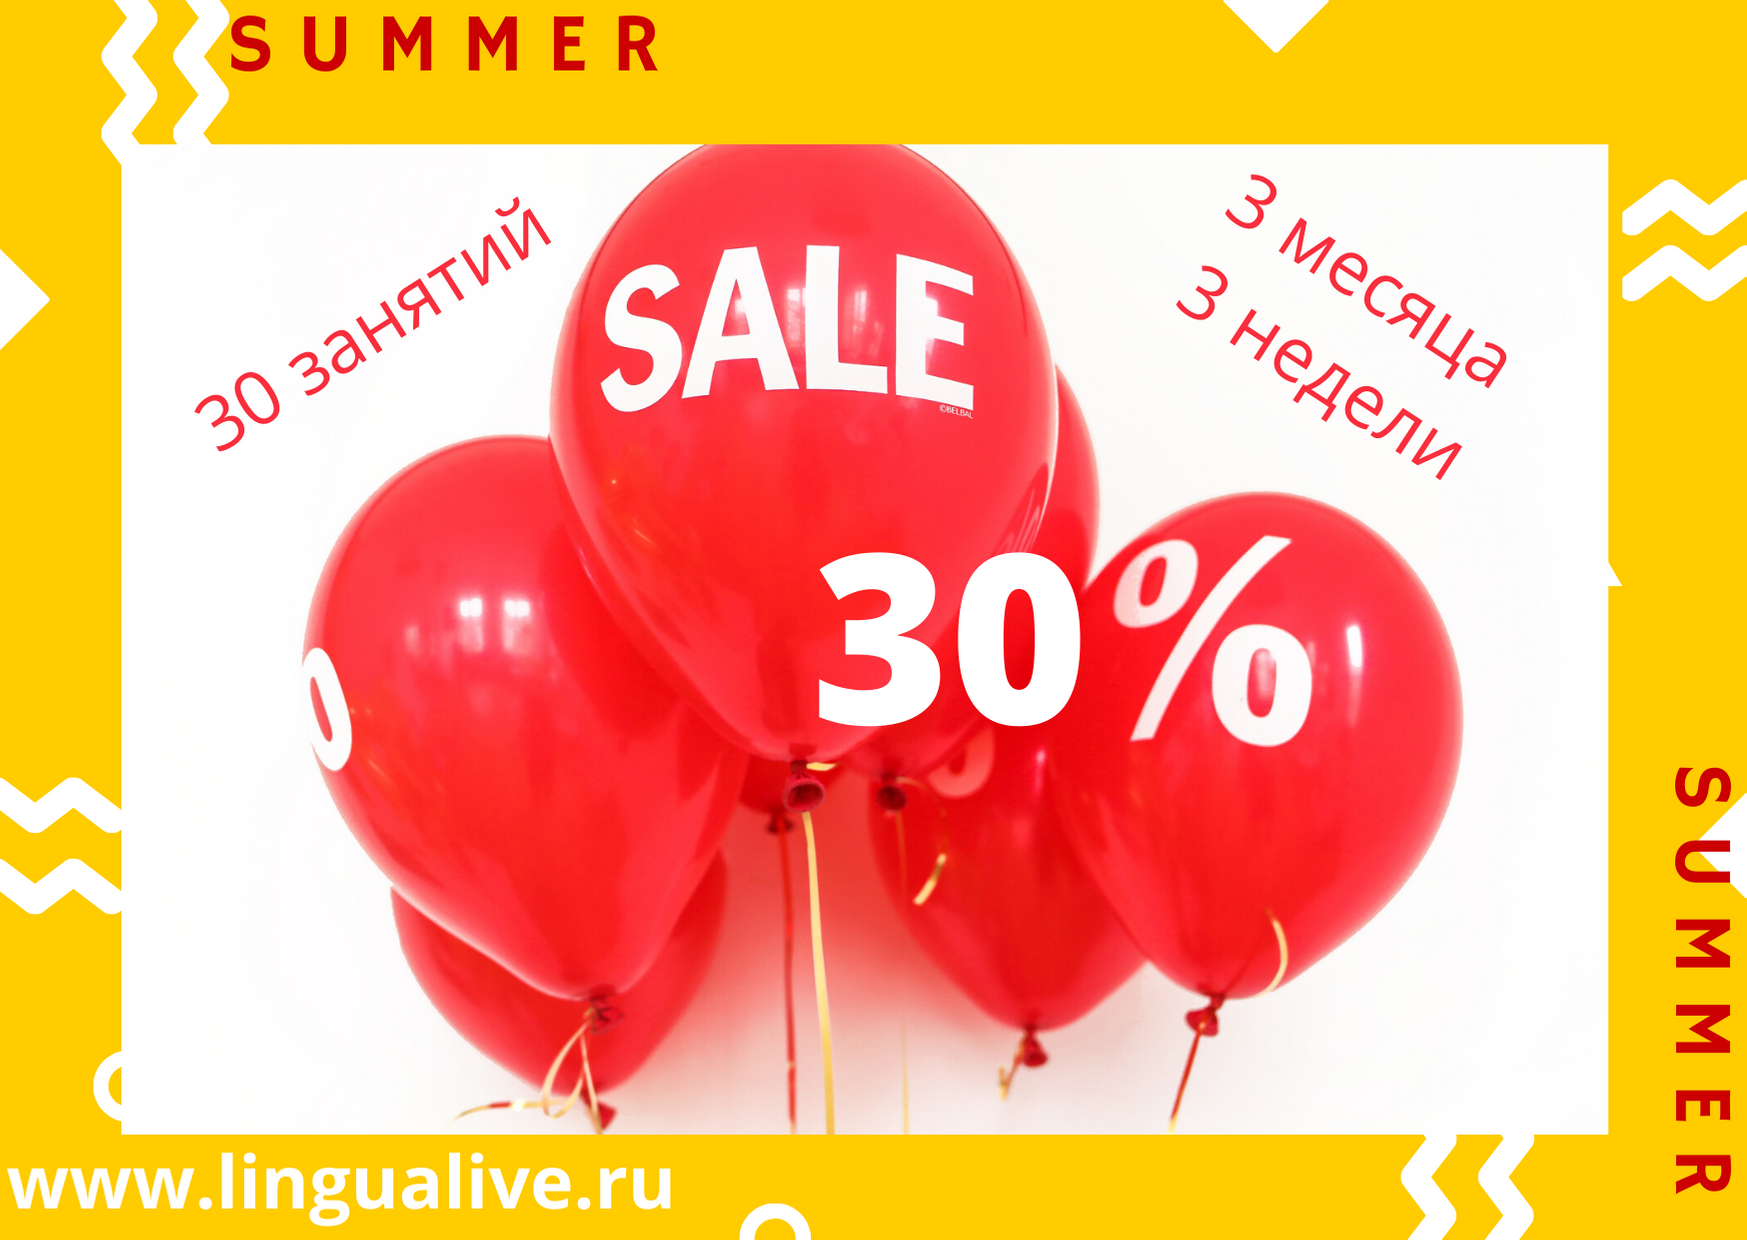 LinguaLive 30% sale 1